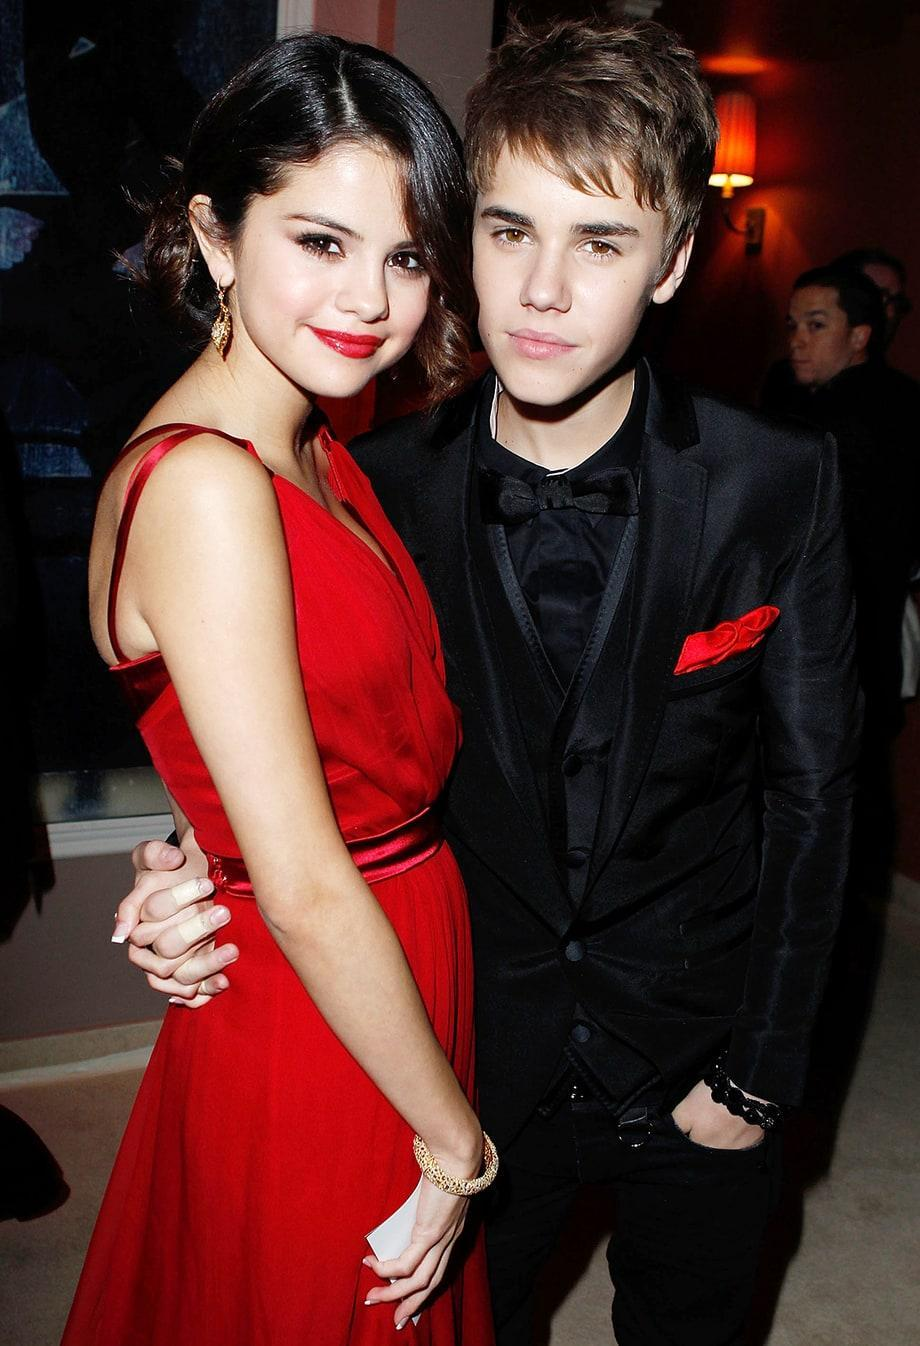 Who is Selena's previous boyfriend in the picture